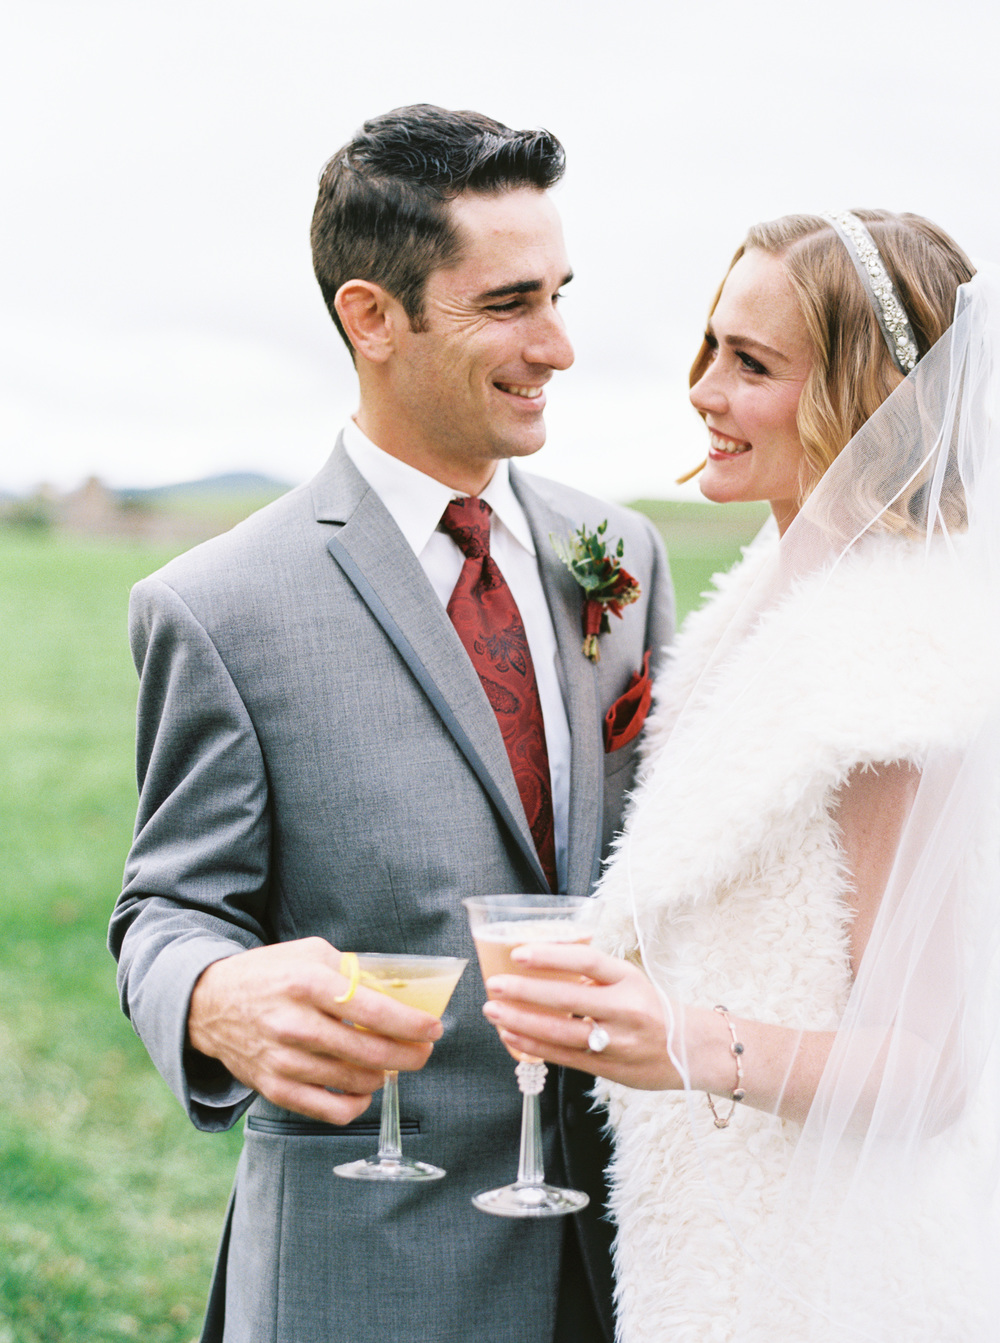 Bride and Groom Cocktails.jpg